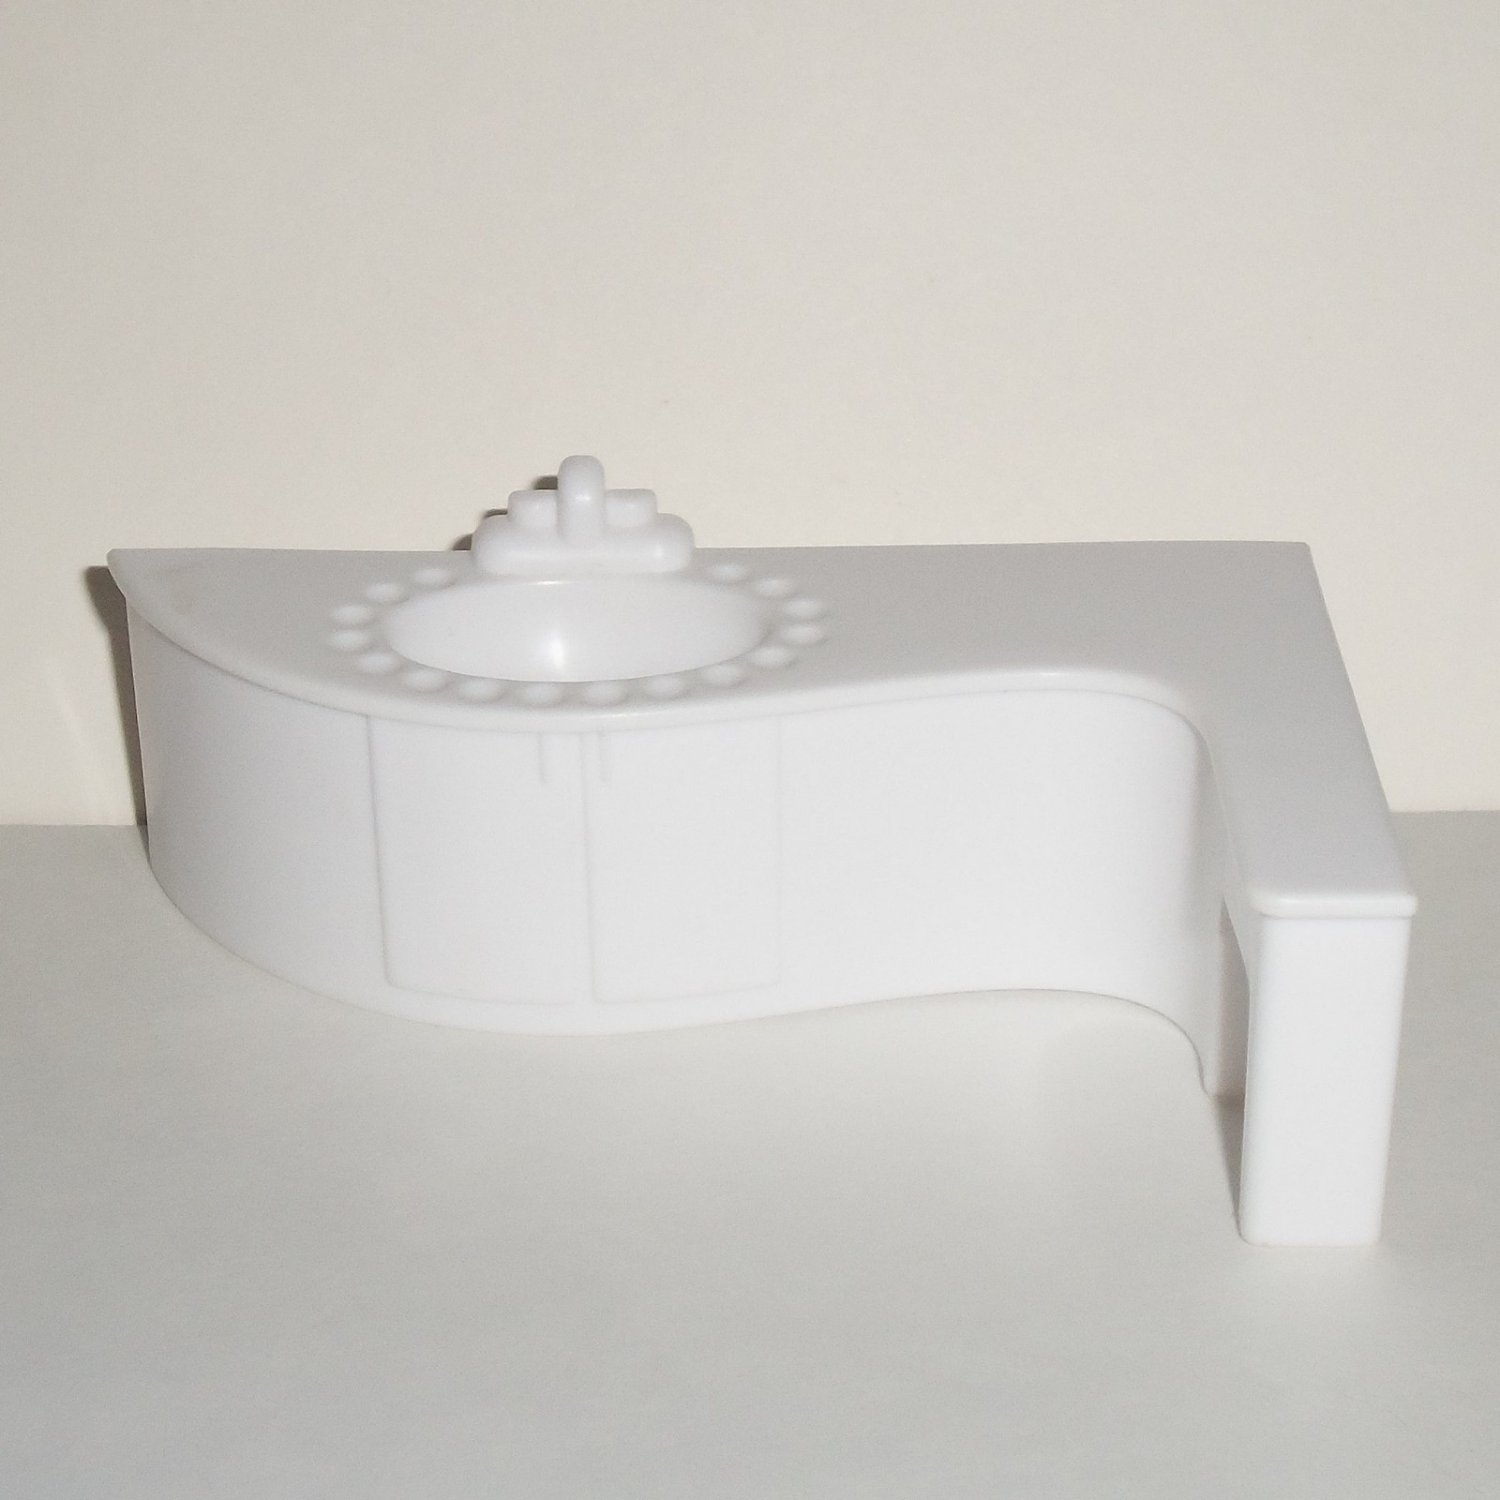 White plastic dollhouse bathroom sink vanity loose used Used bathroom vanity with sink